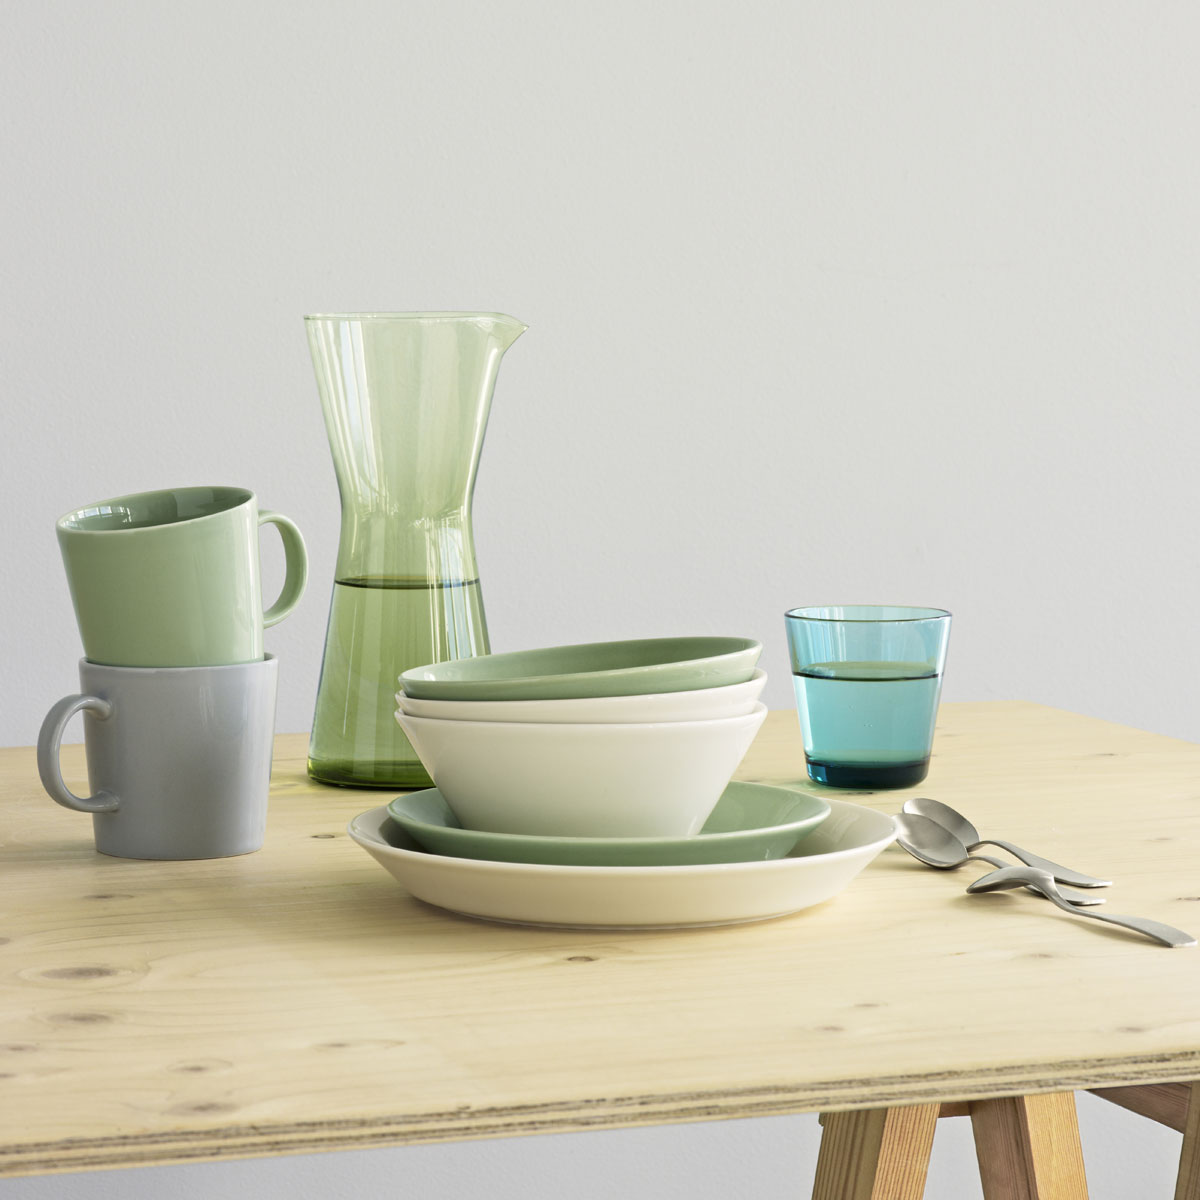 iittala teema celadon large mug iittala sale. Black Bedroom Furniture Sets. Home Design Ideas